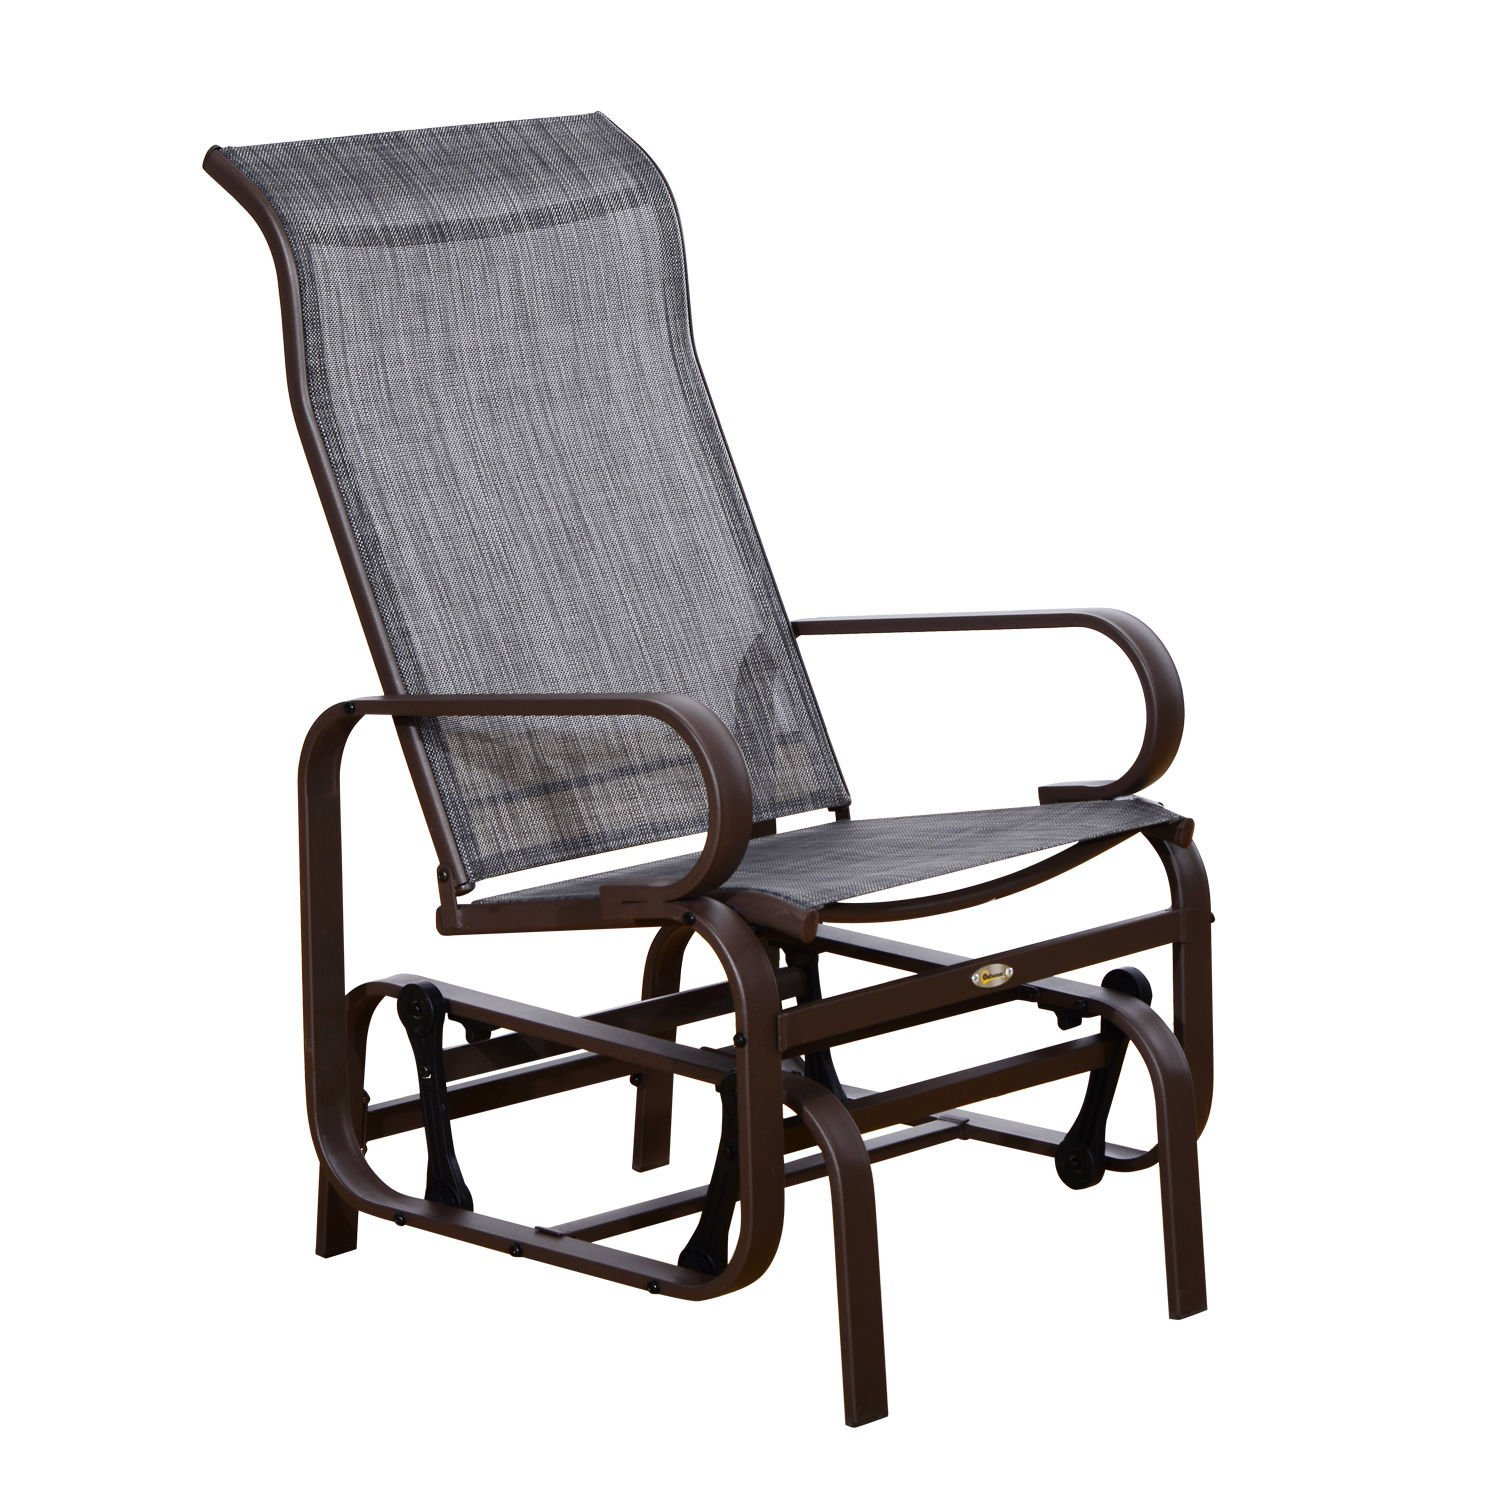 outsunny swinging glider lounging chair w smooth rocking arms lightweight construction for patio backyard